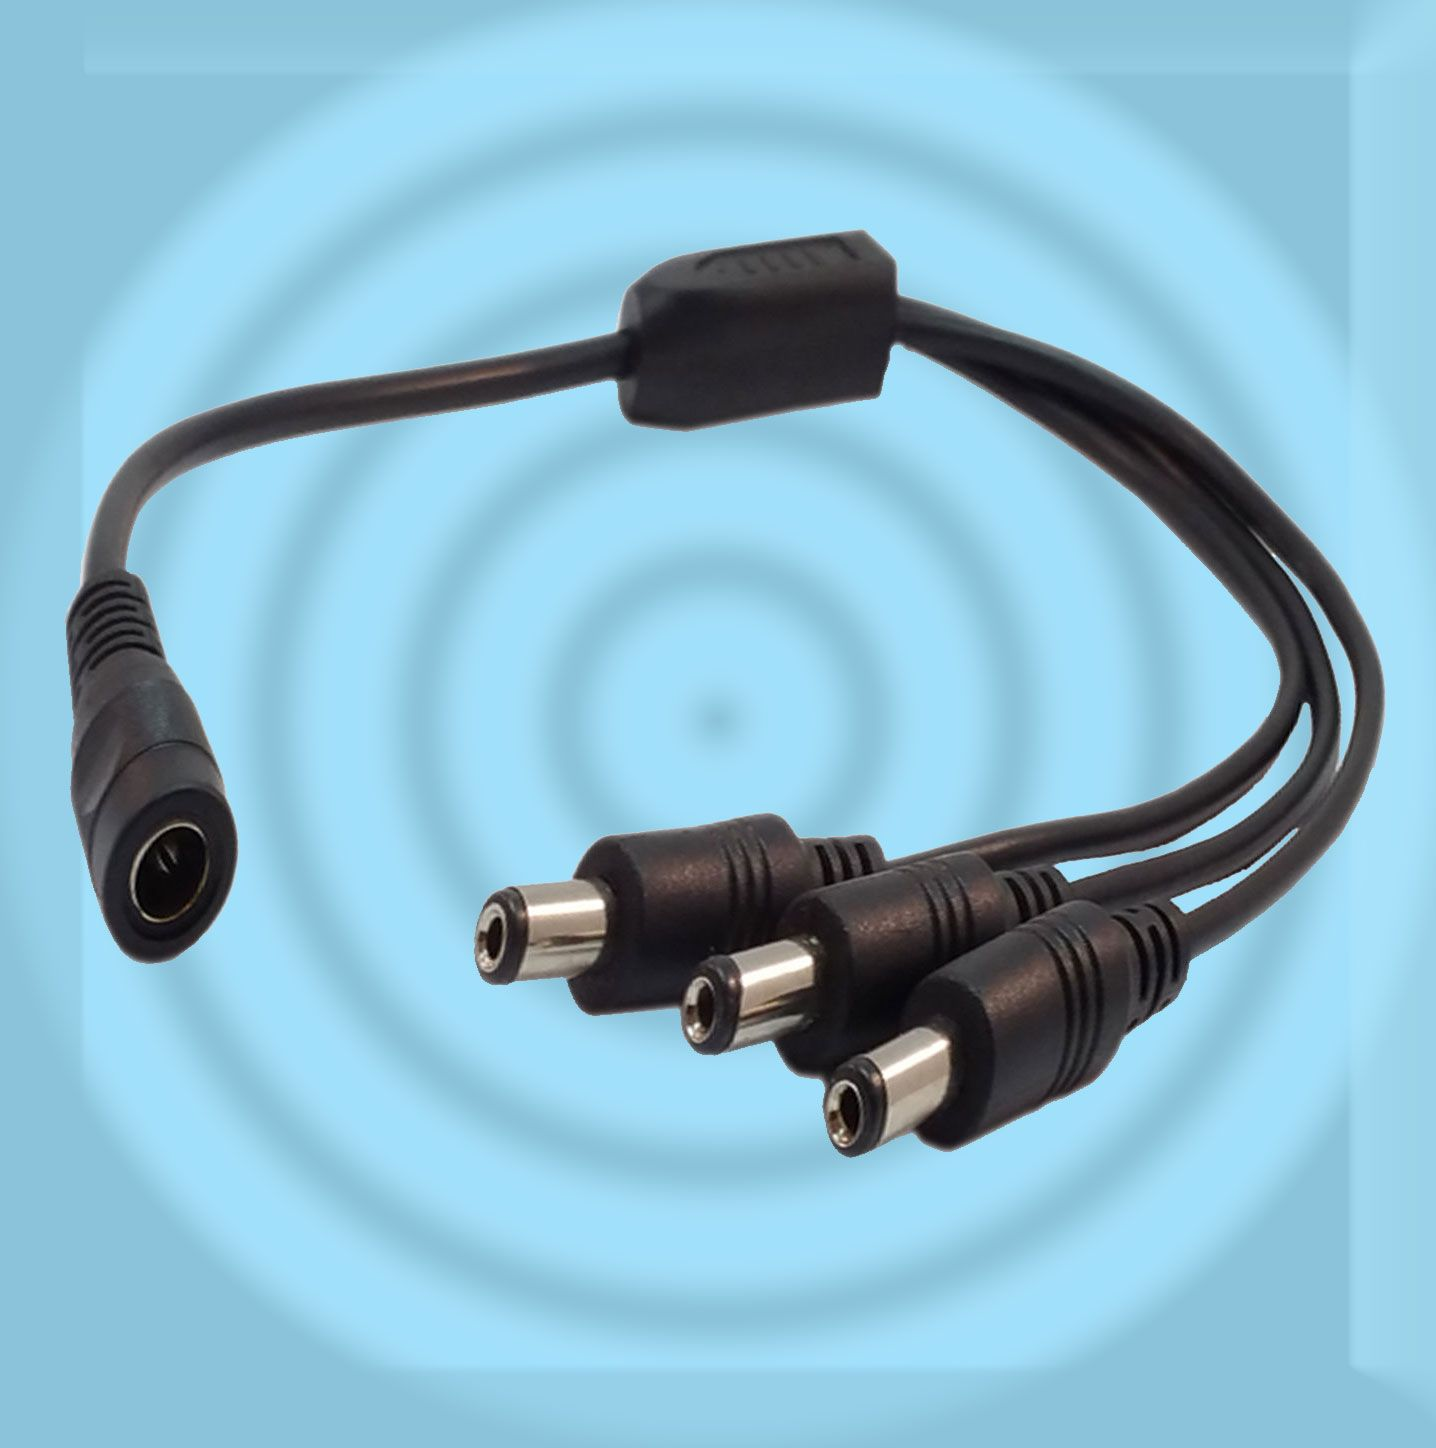 2/3/4/5/8 Way DC Power Supply Splitter Adapter Cord For CCTV ...